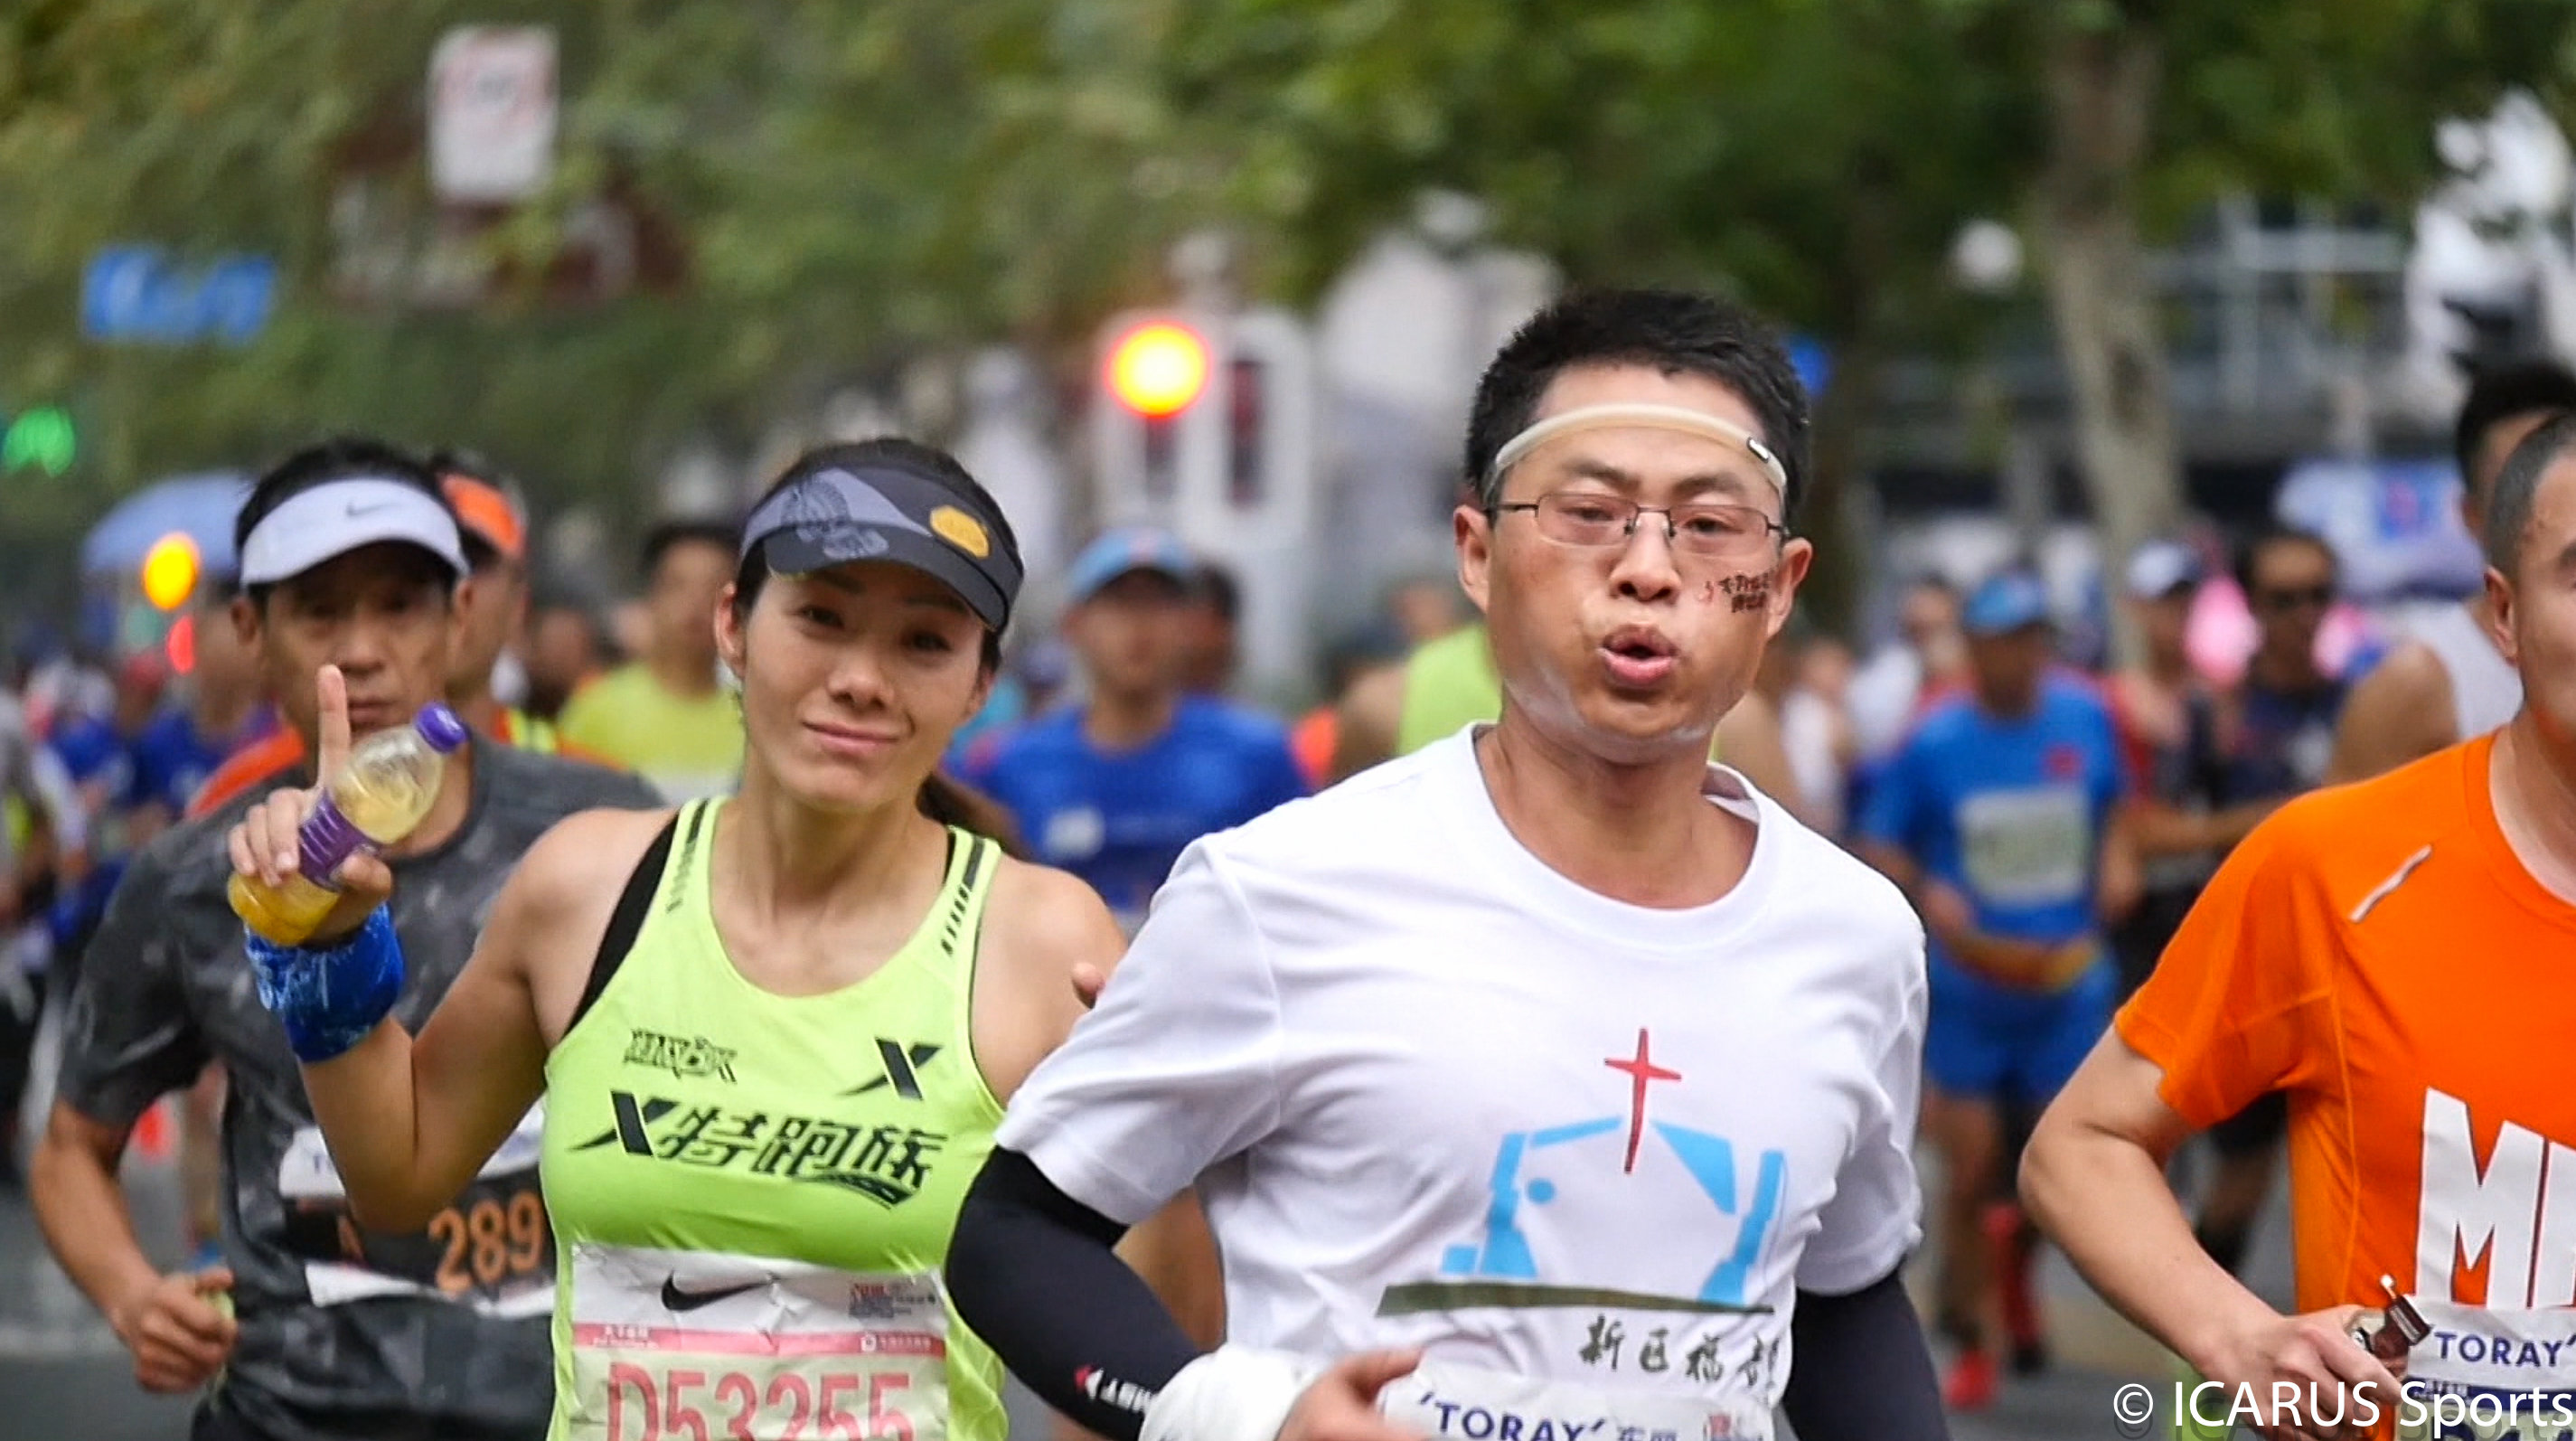 ICARUS SPORTS TAKES ON CHINA'S MOST POPULAR OUTDOOR SPORTS EVENTS